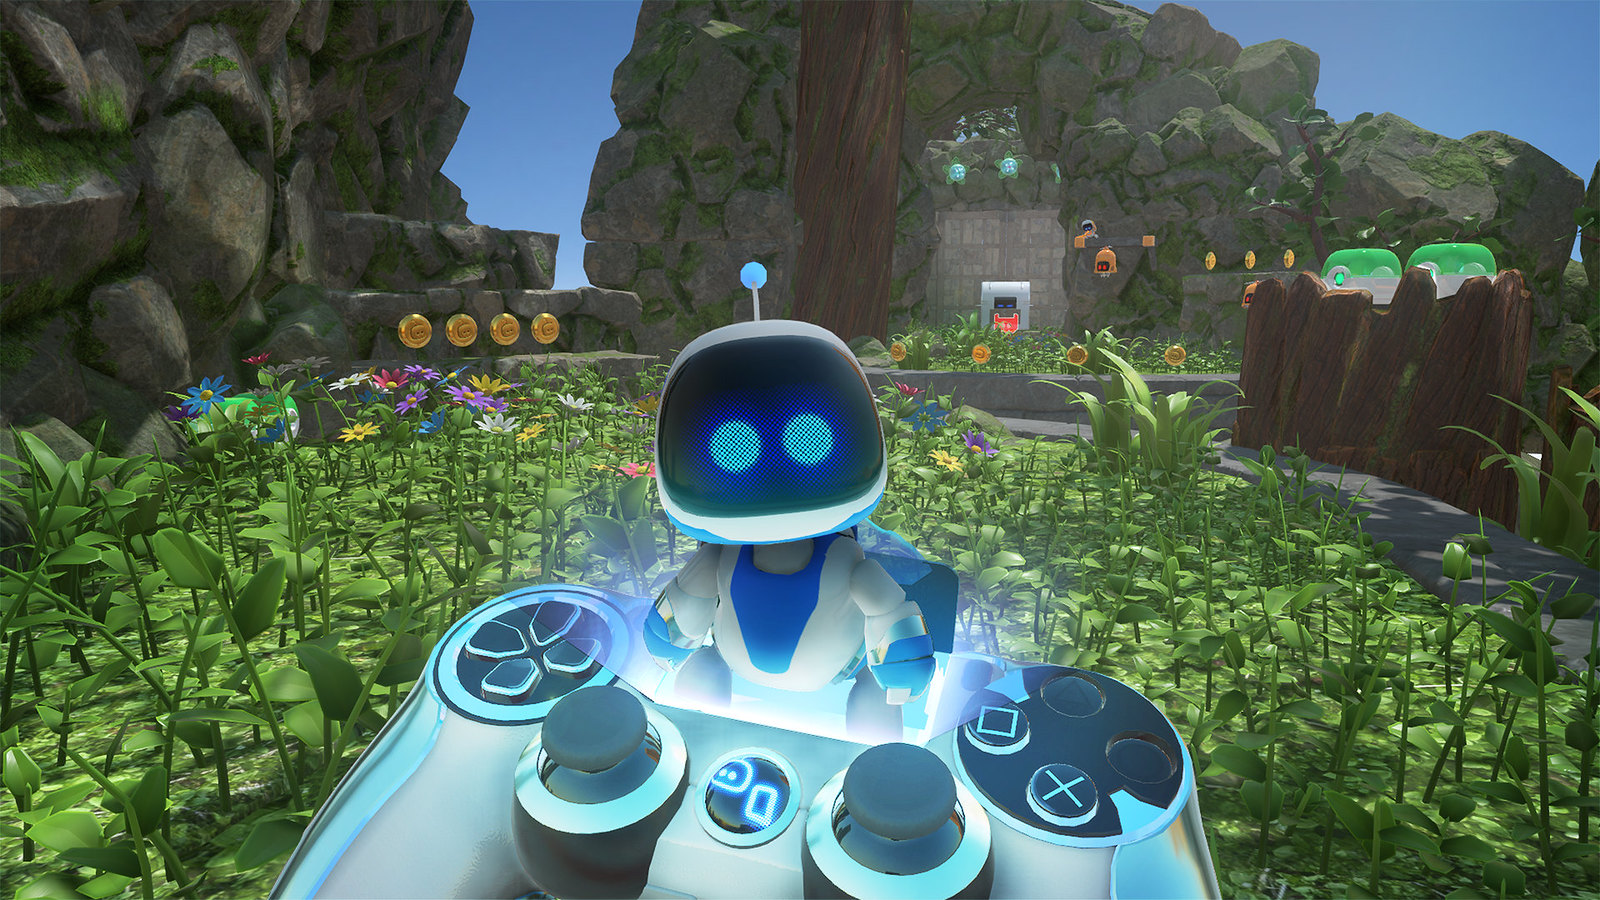 astro-bot-screen-01-ps4-eu-21may18